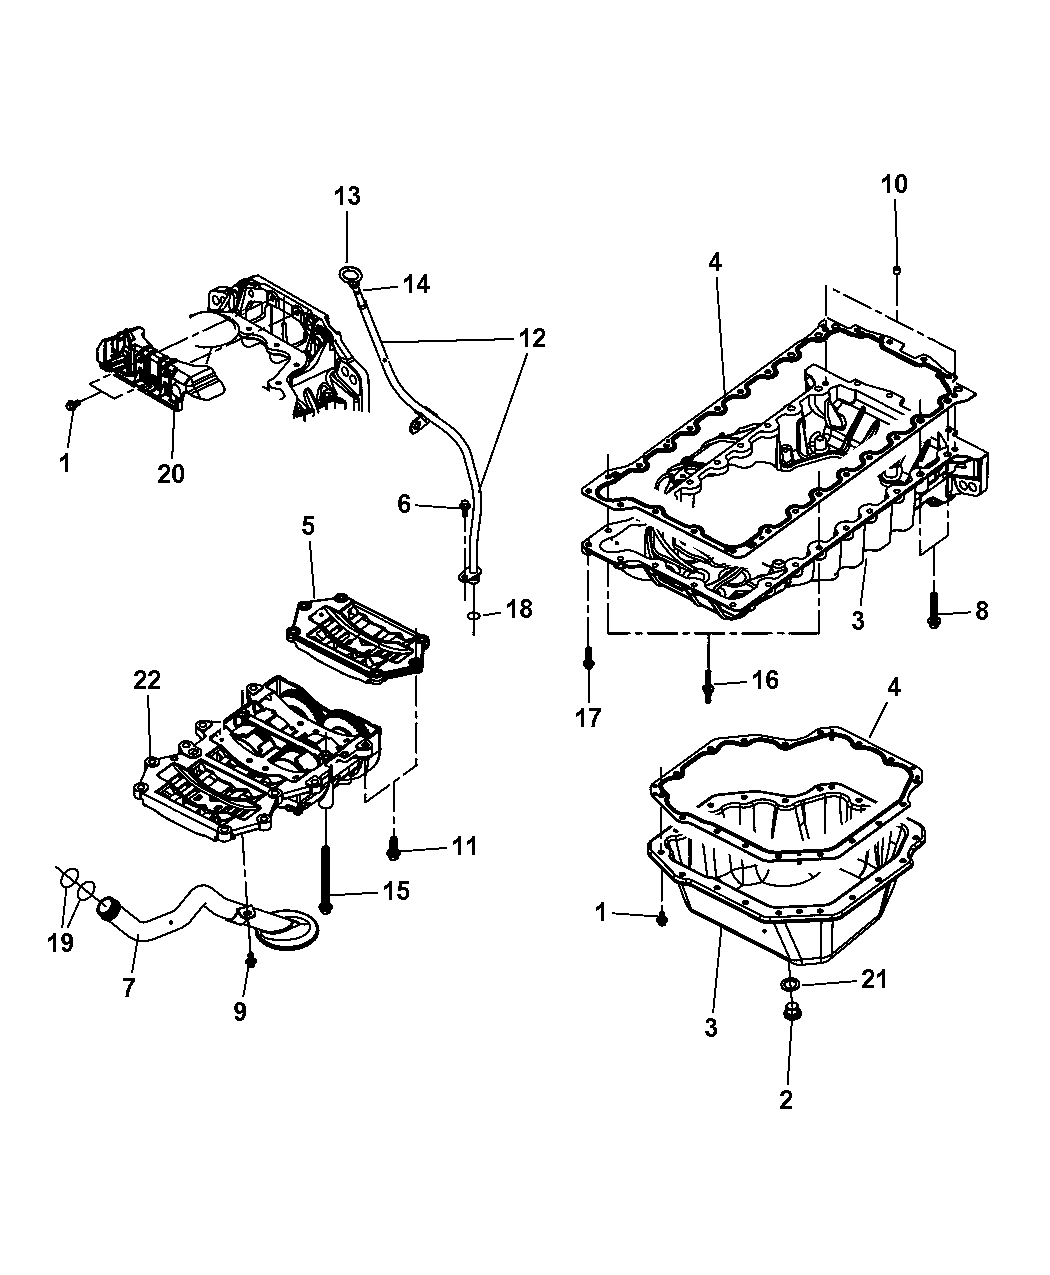 7944 2009 Jeep Wrangler Engine Parts Diagram